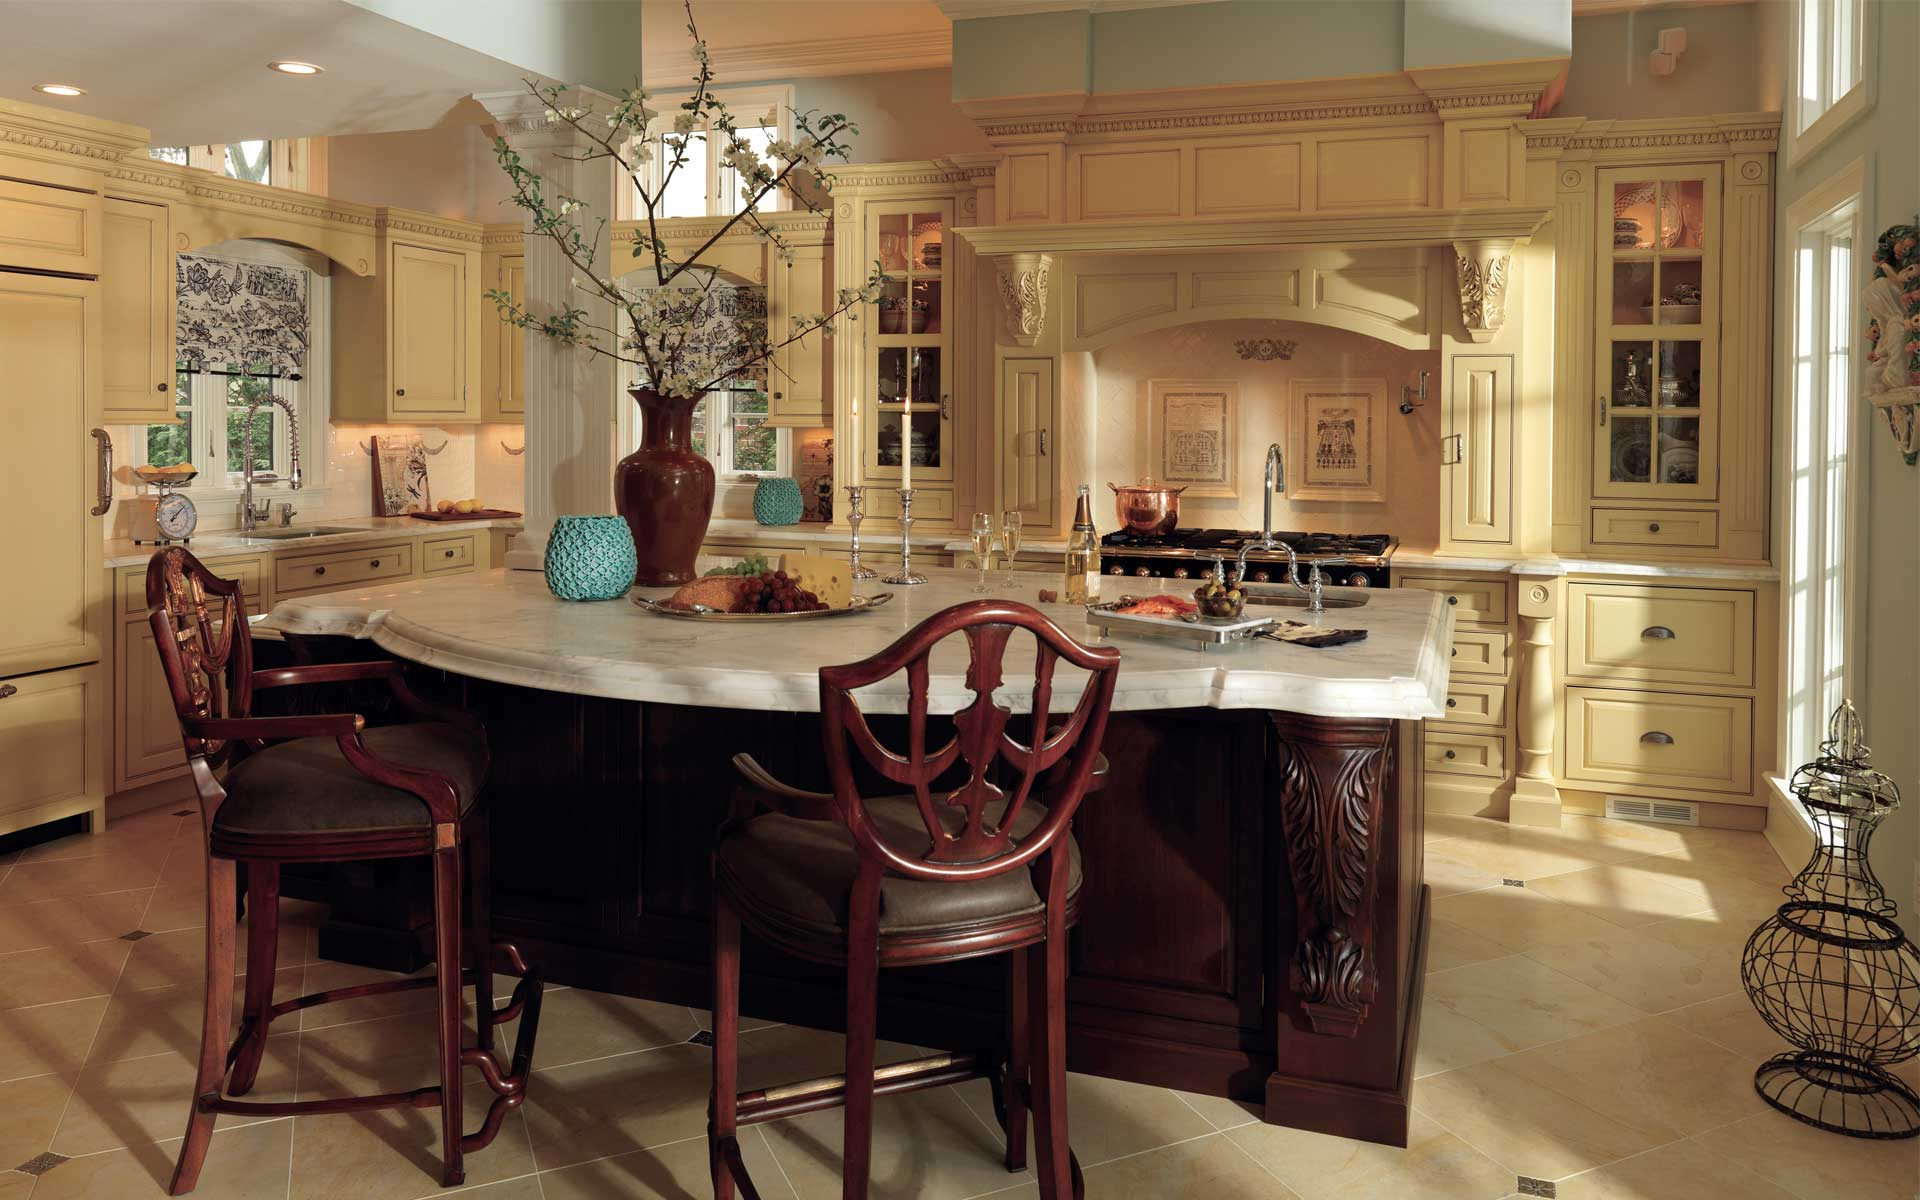 Kitchen U0026 Bathroom Remodeling. STYLISH AND FUNCTIONAL LIFETIME DESIGN